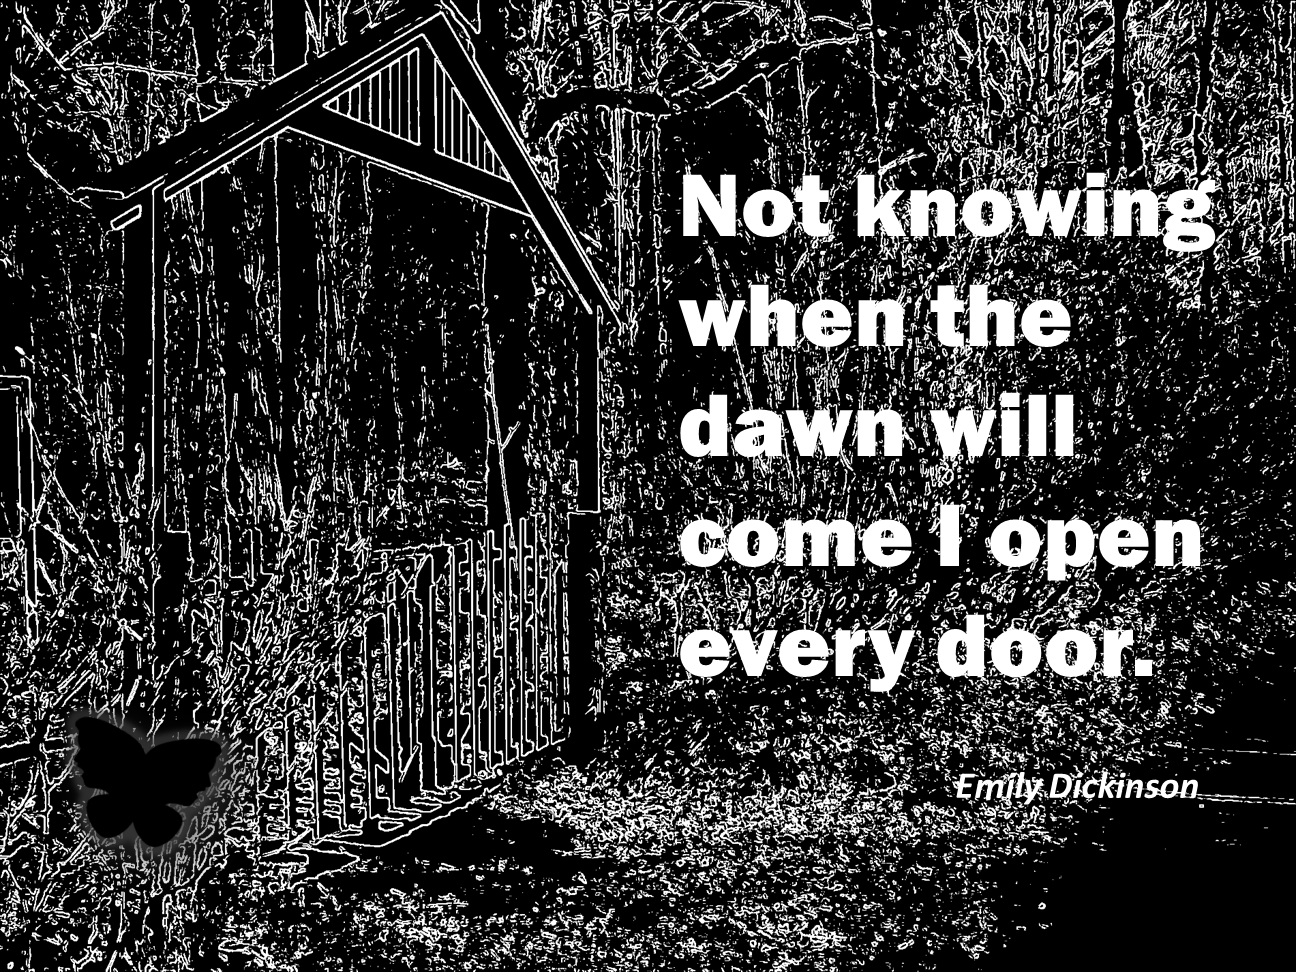 A beautiful quote by Emily Dickinson